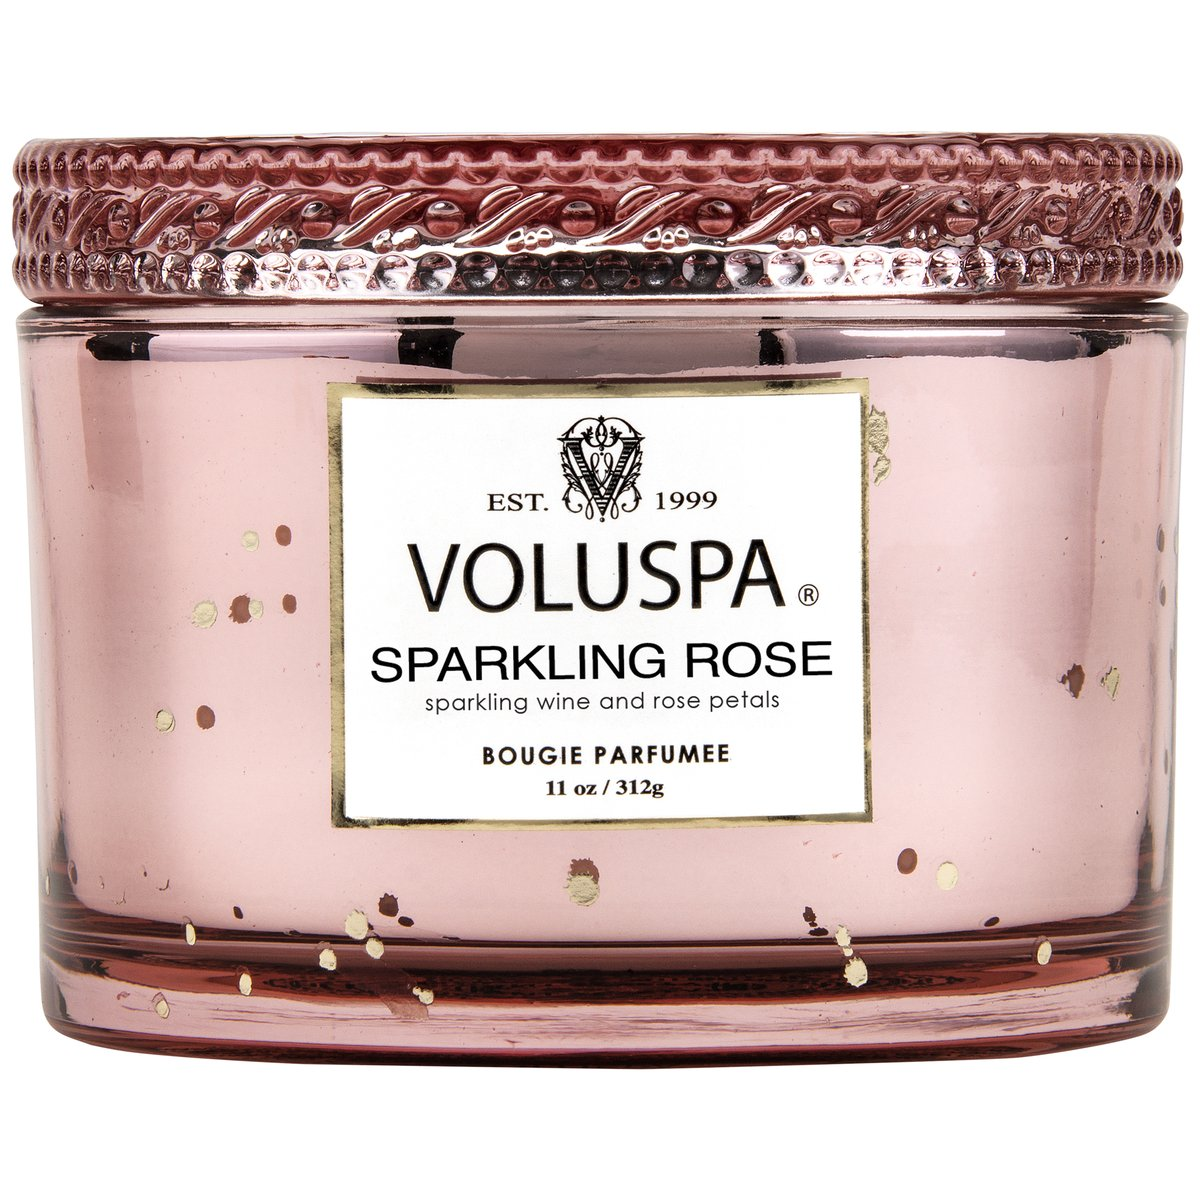 Voluspa Sparkling Rose Medium Candle